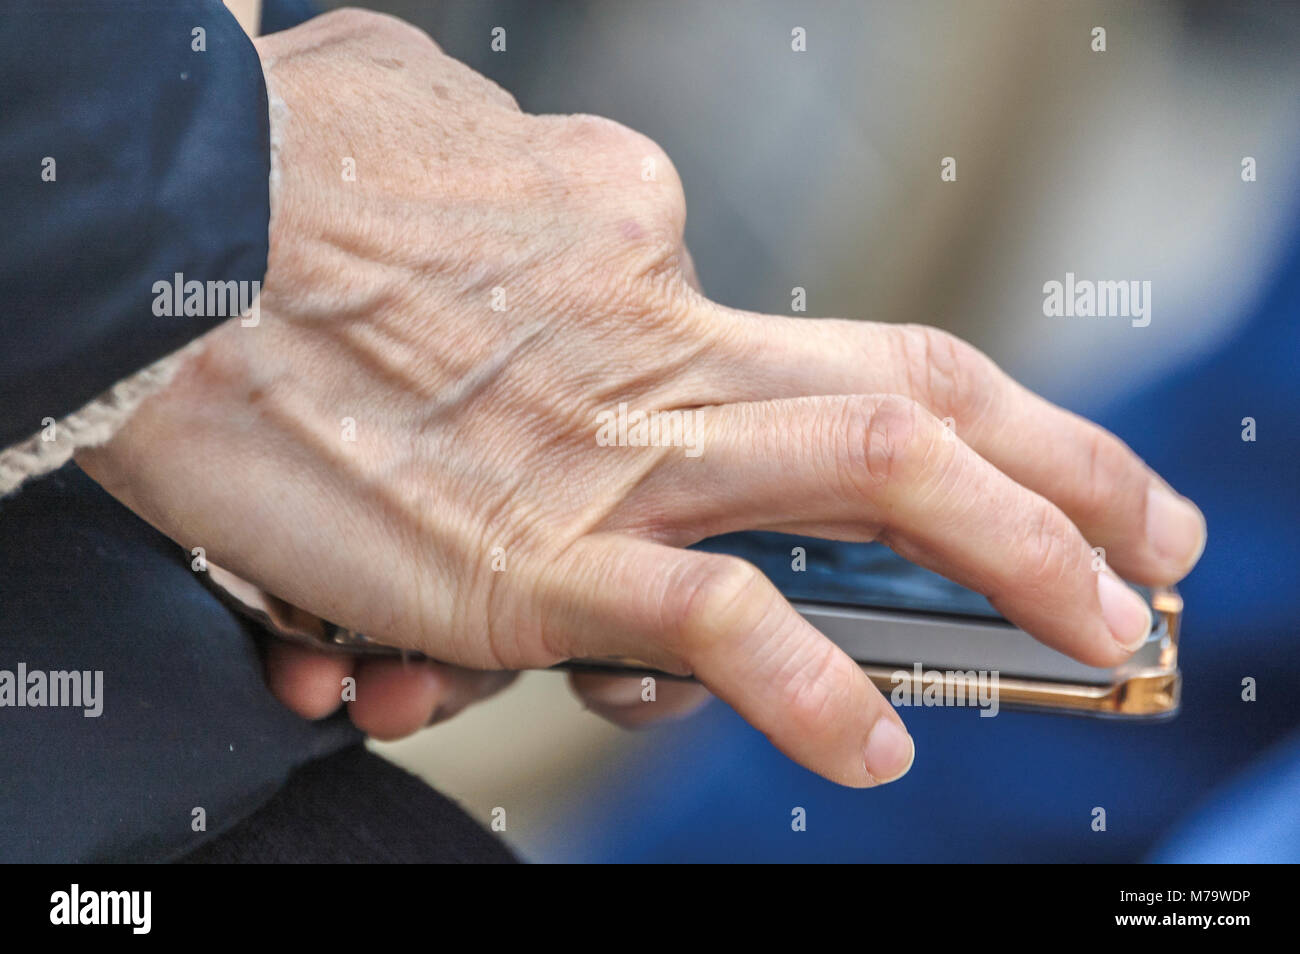 human hand touching a mobile phone Stock Photo